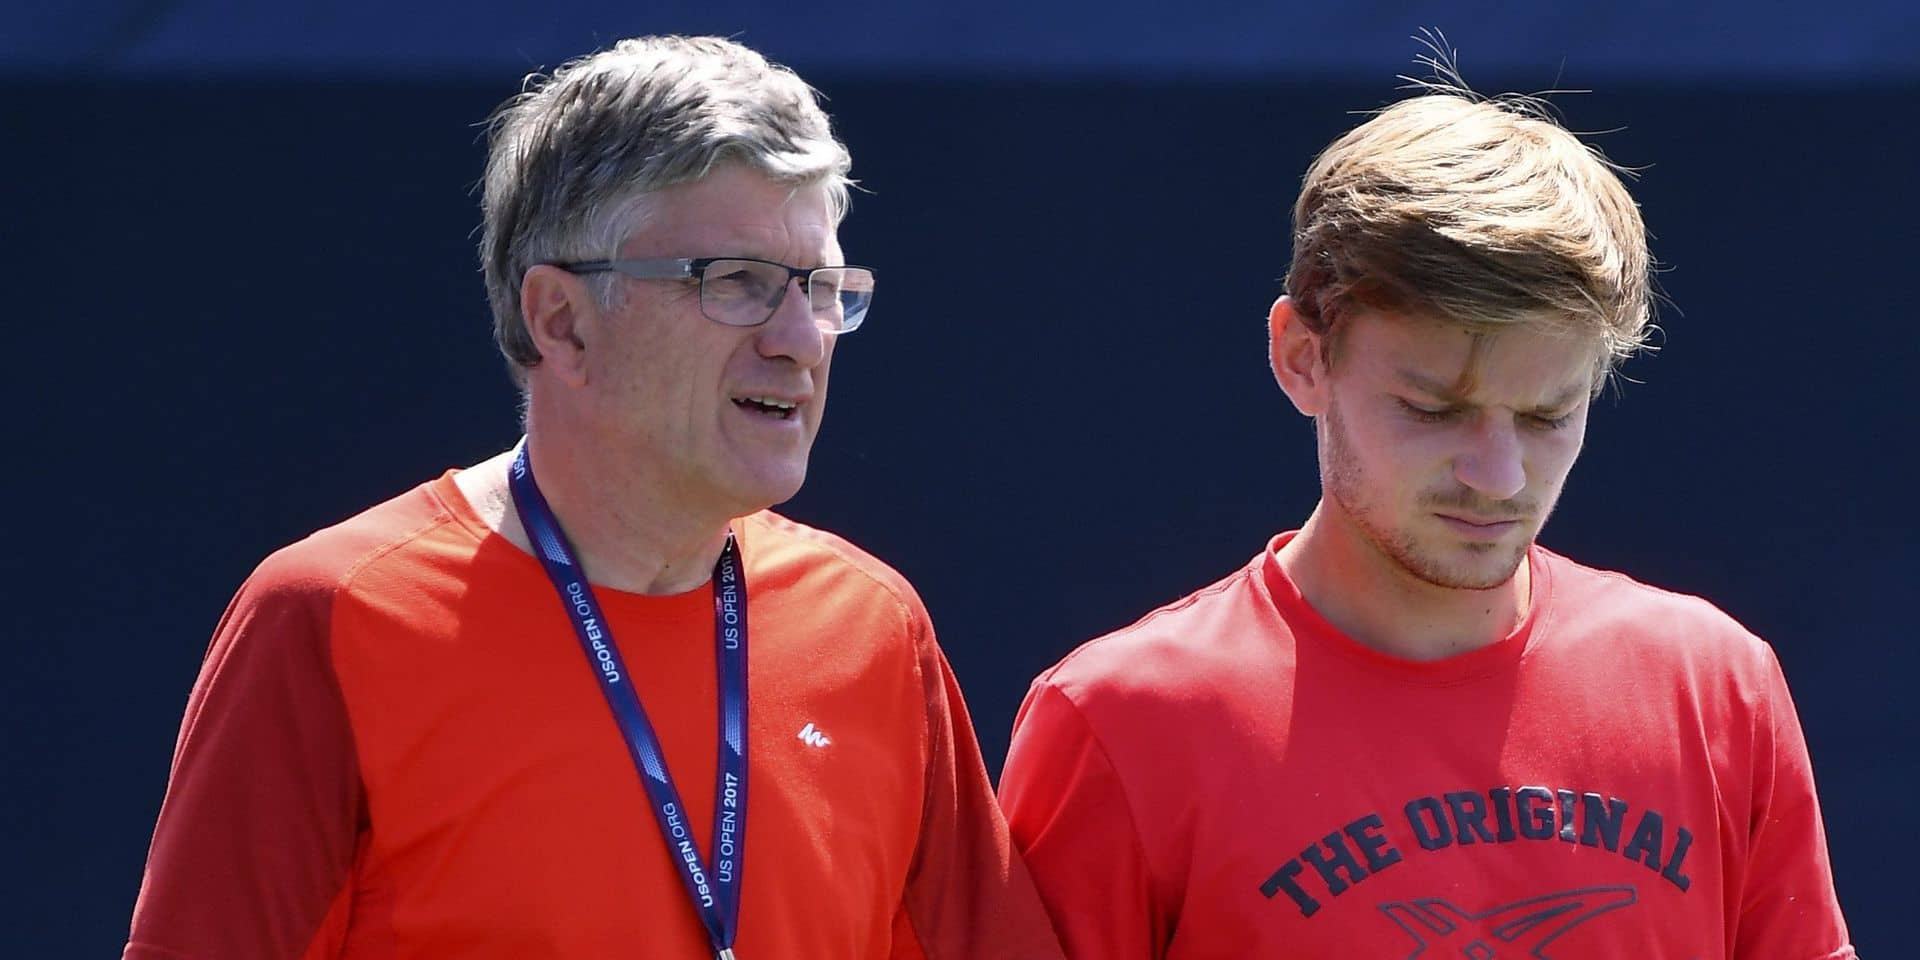 NEW YORK, UNITED STATES OF AMERICA - AUGUST 24 : Maurice Joris physio trainer and coach Van Cleemput Thierry with David Goffin of Belgium during a training session before the 2017 US Open on August 24, 2017 in the Flushing neighborhood of the Queens borough of New York City, United States Of America, 24/08/2017 ( Photo by Vincent Kalut / Photonews